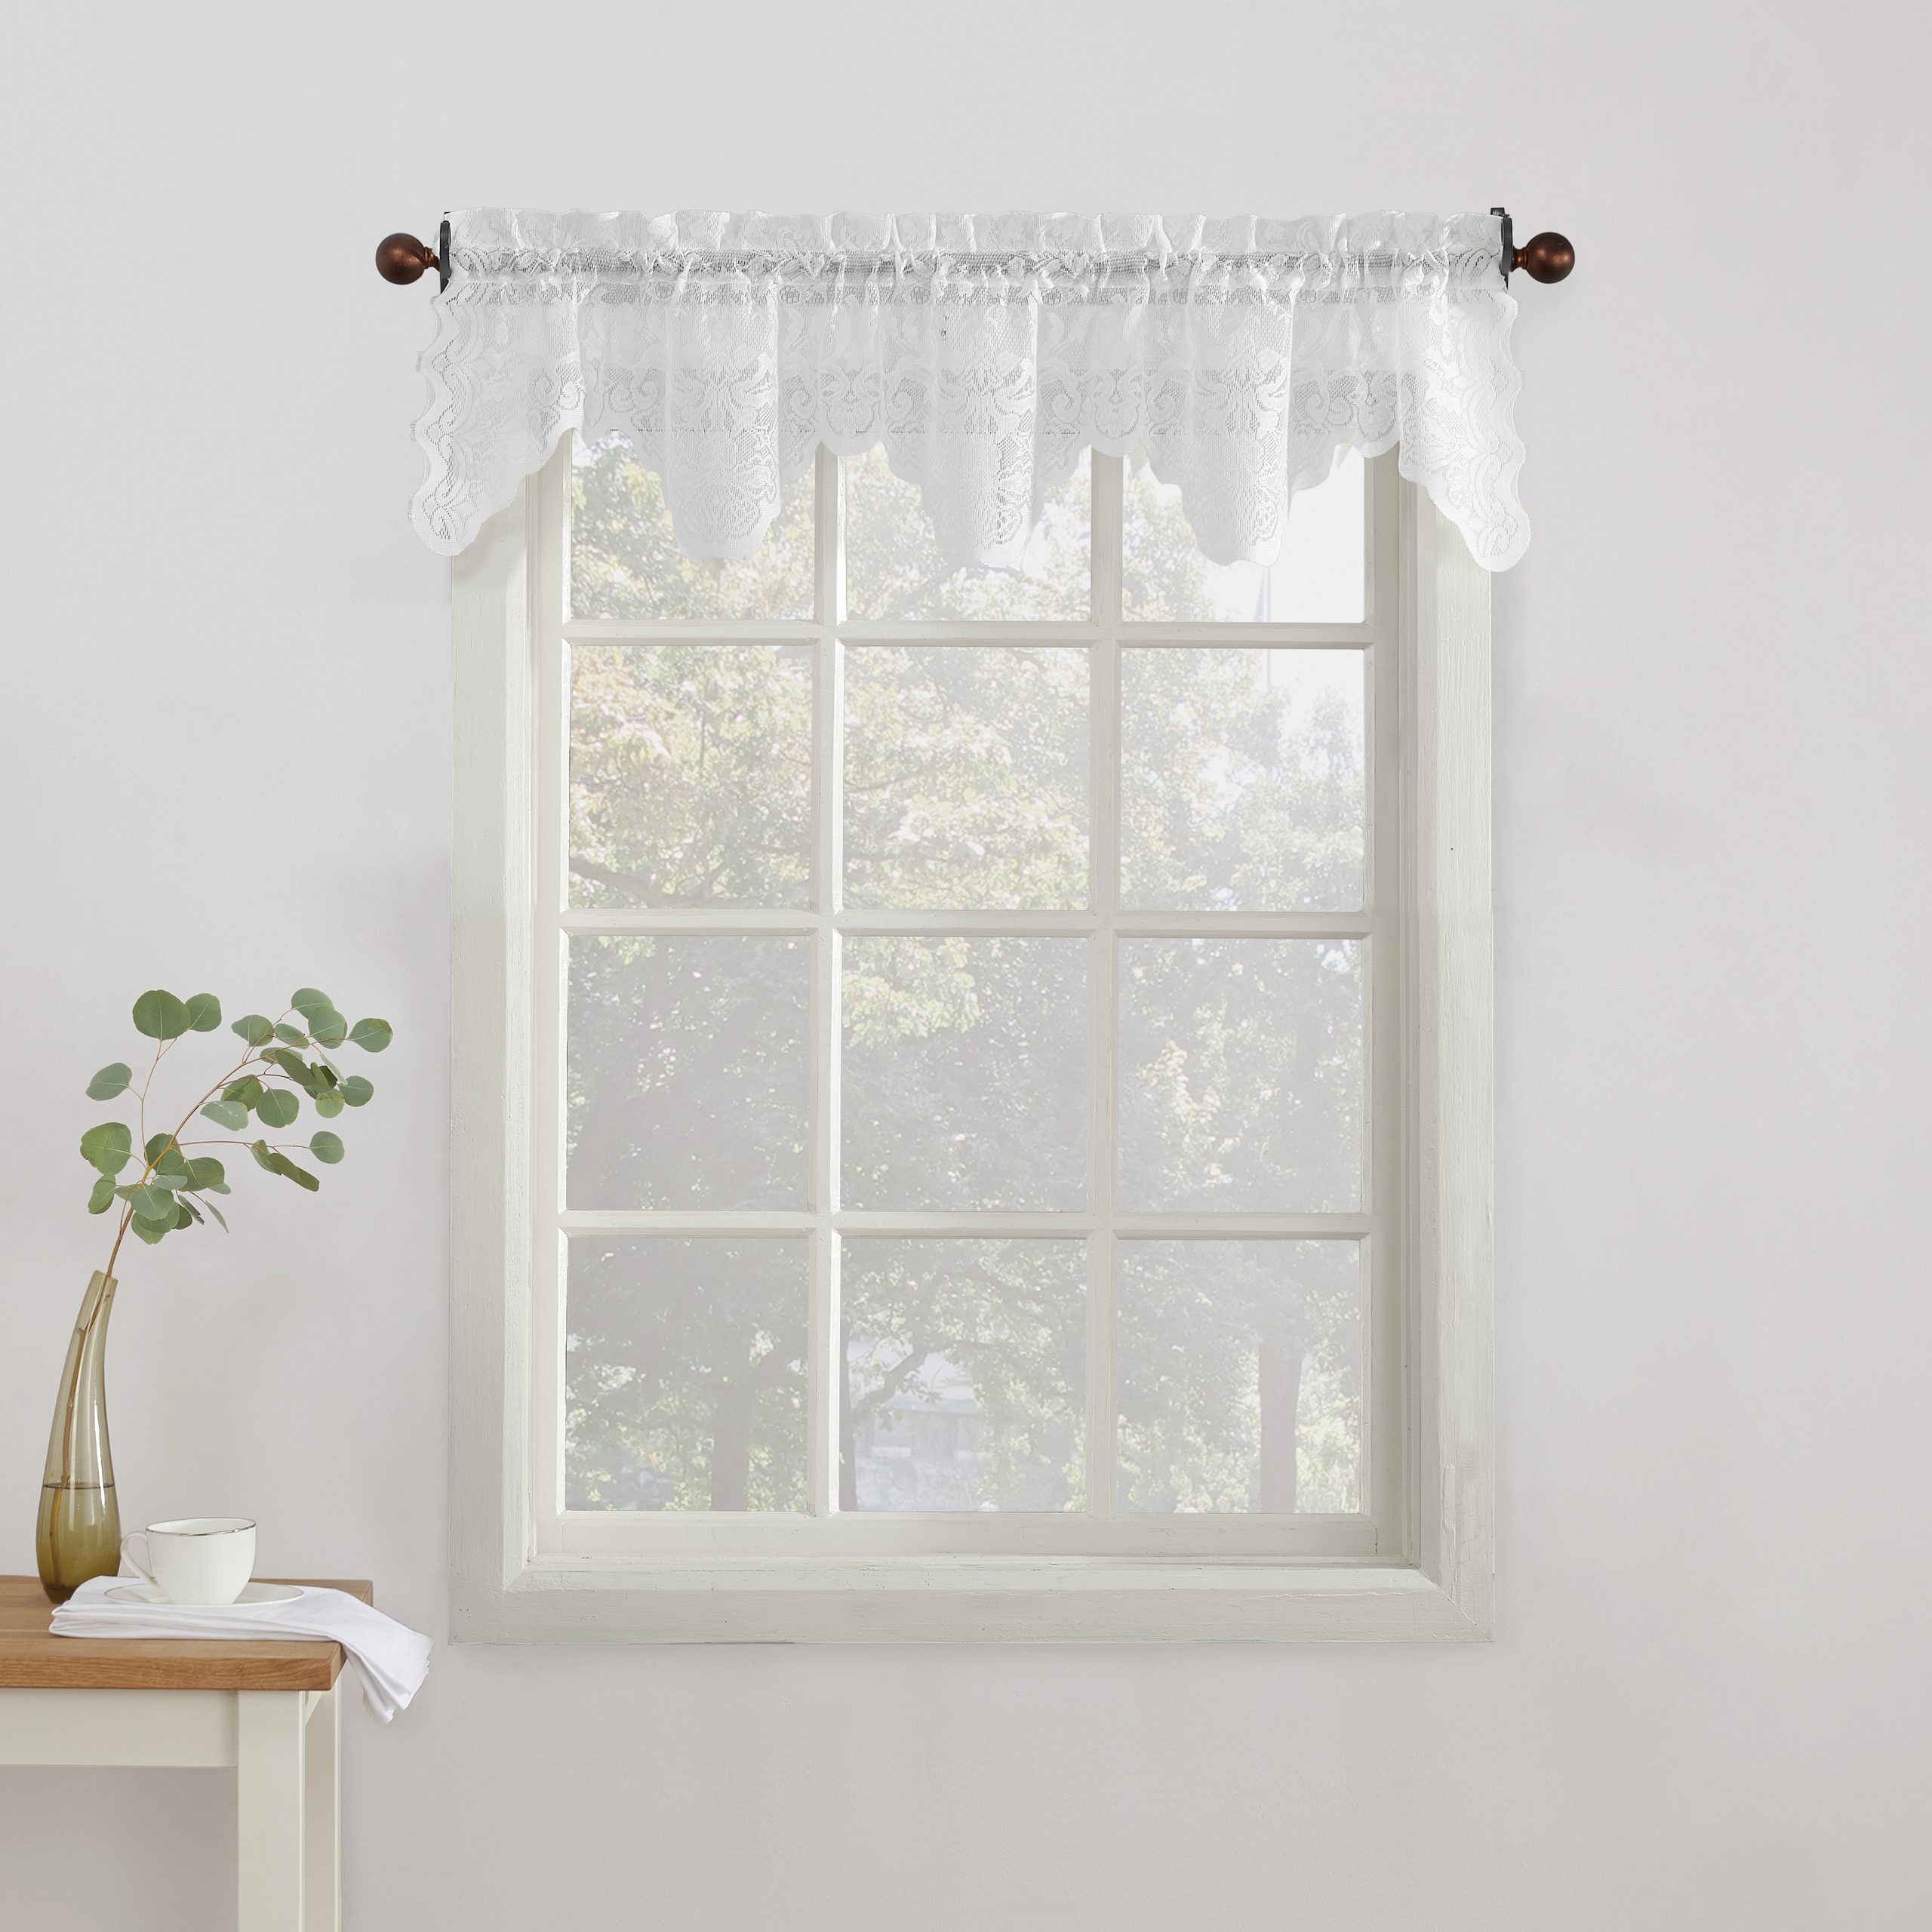 Latest No. 918 Quinn Floral Lace Sheer Rod Pocket Kitchen Curtains Pertaining To Floral Lace Rod Pocket Kitchen Curtain Valance And Tiers Sets (Gallery 9 of 20)